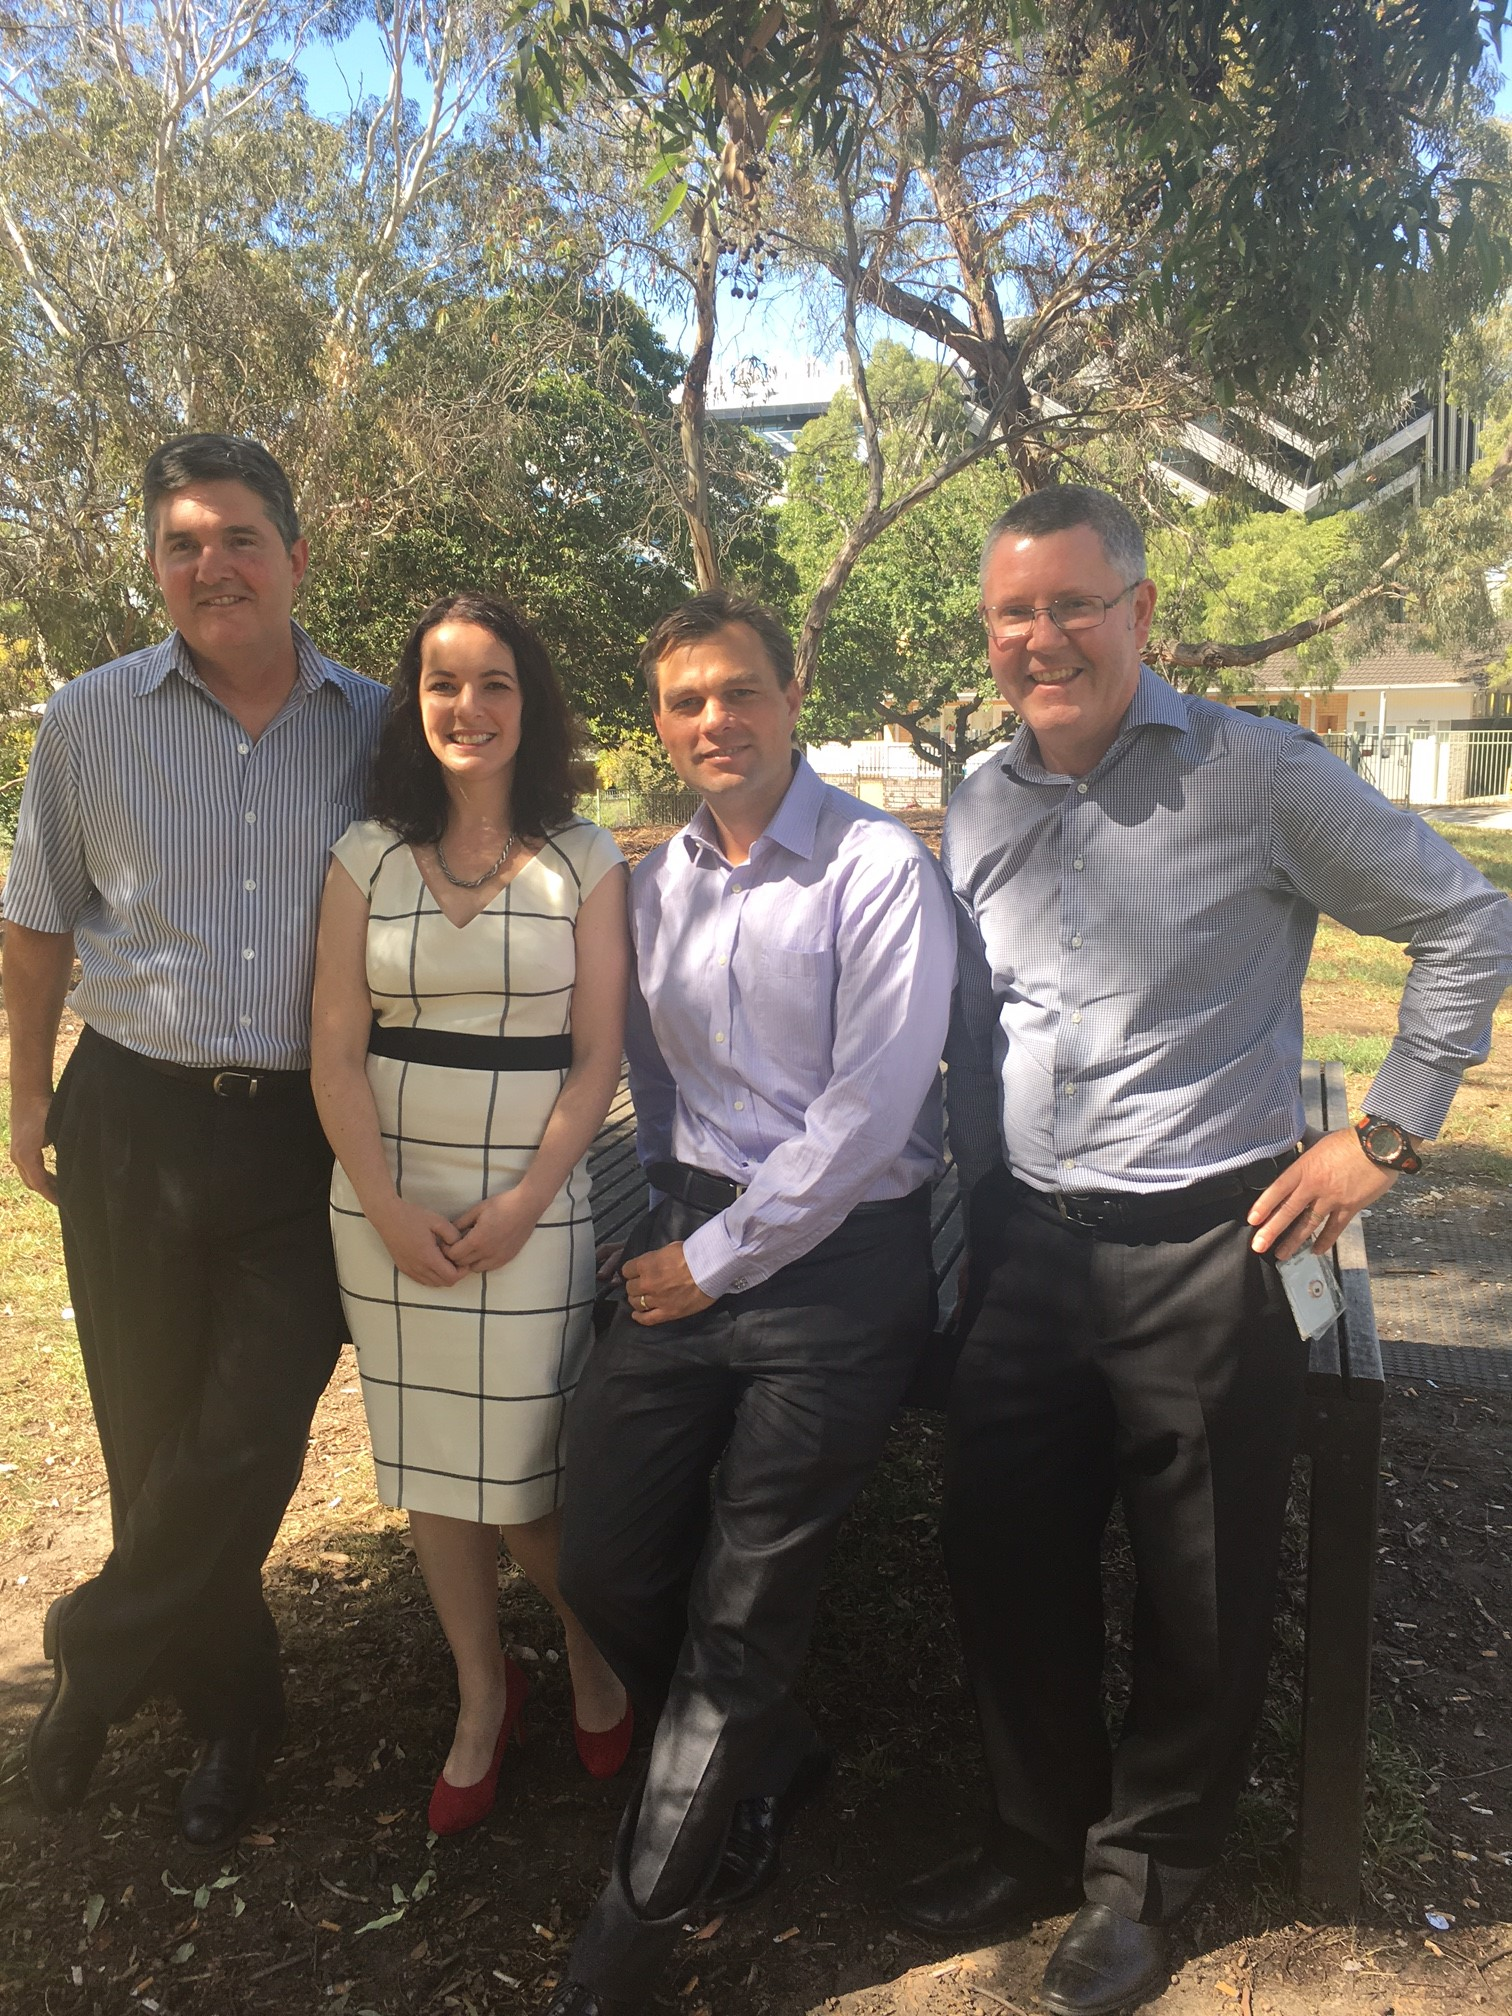 Left to right: CSIRO's biomedical research director Dr Paul Savage, MecRx founder Dr Joanne Alcindor, MecRx board director Dr Chris Smith and CSIRO chemistry group leader Dr Jack Ryan.